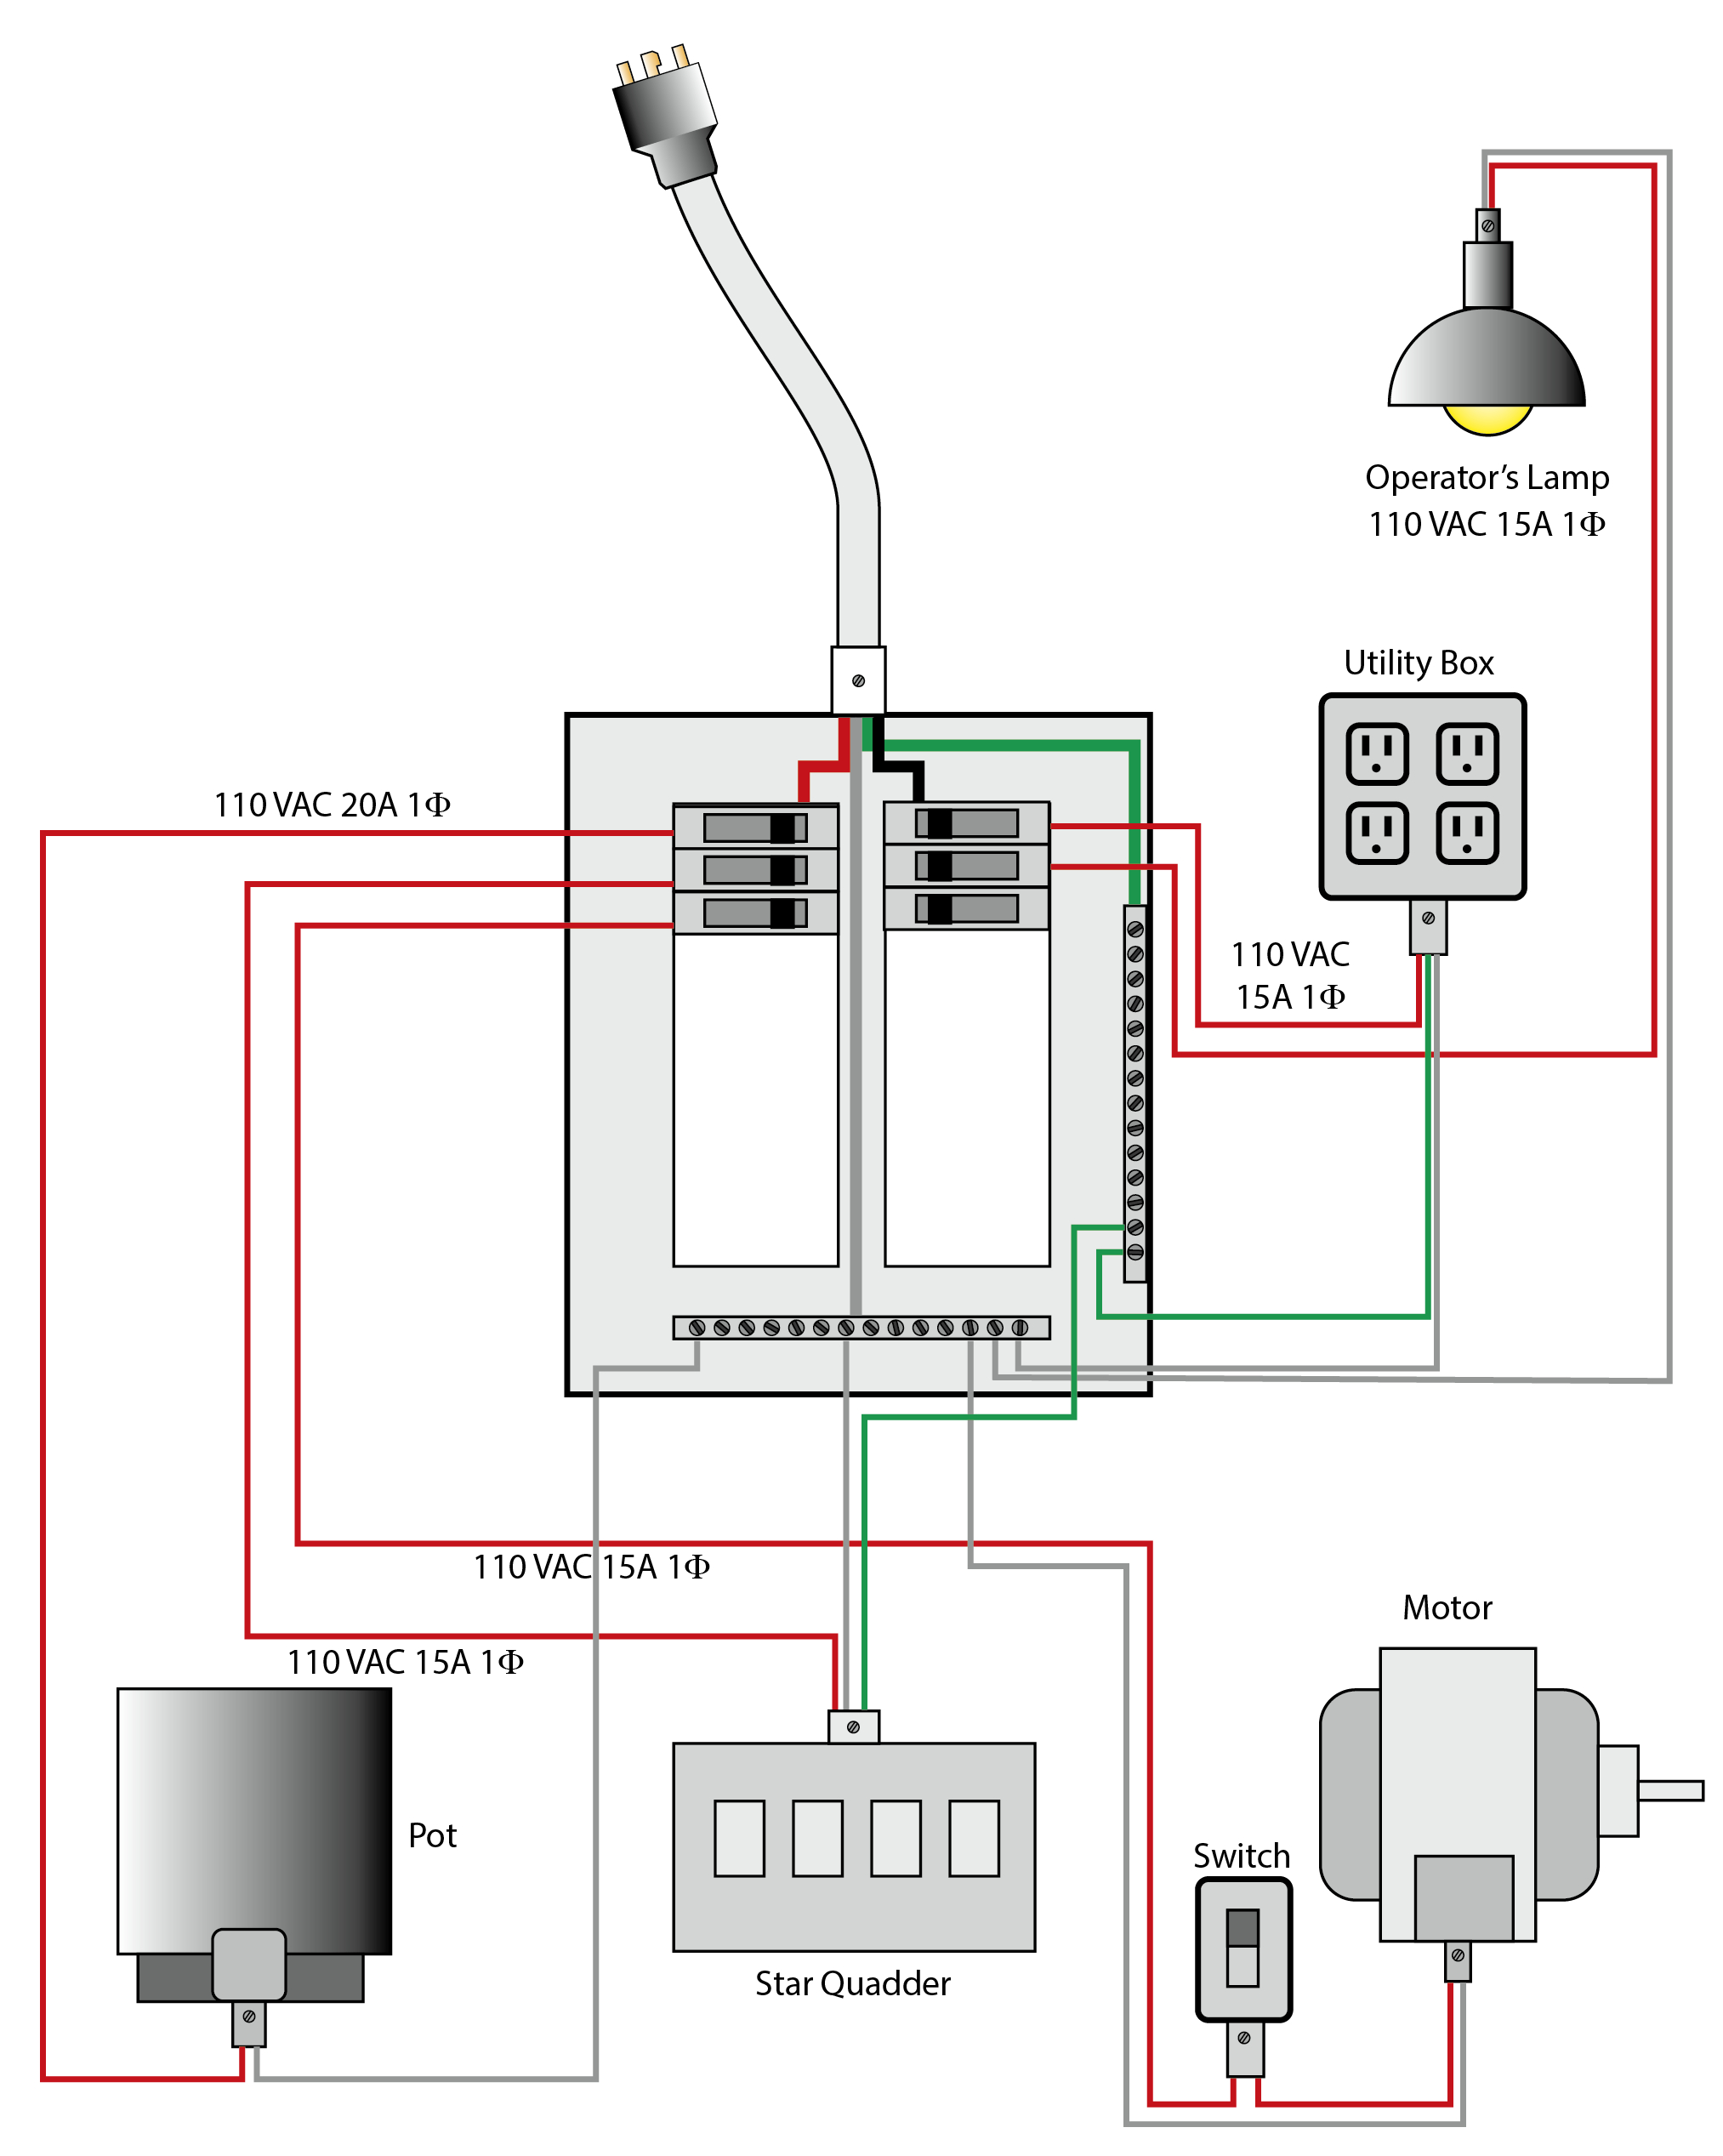 Electrical Conduit Wiring Diagram | Wiring Diagram - Conduit Wiring Diagram